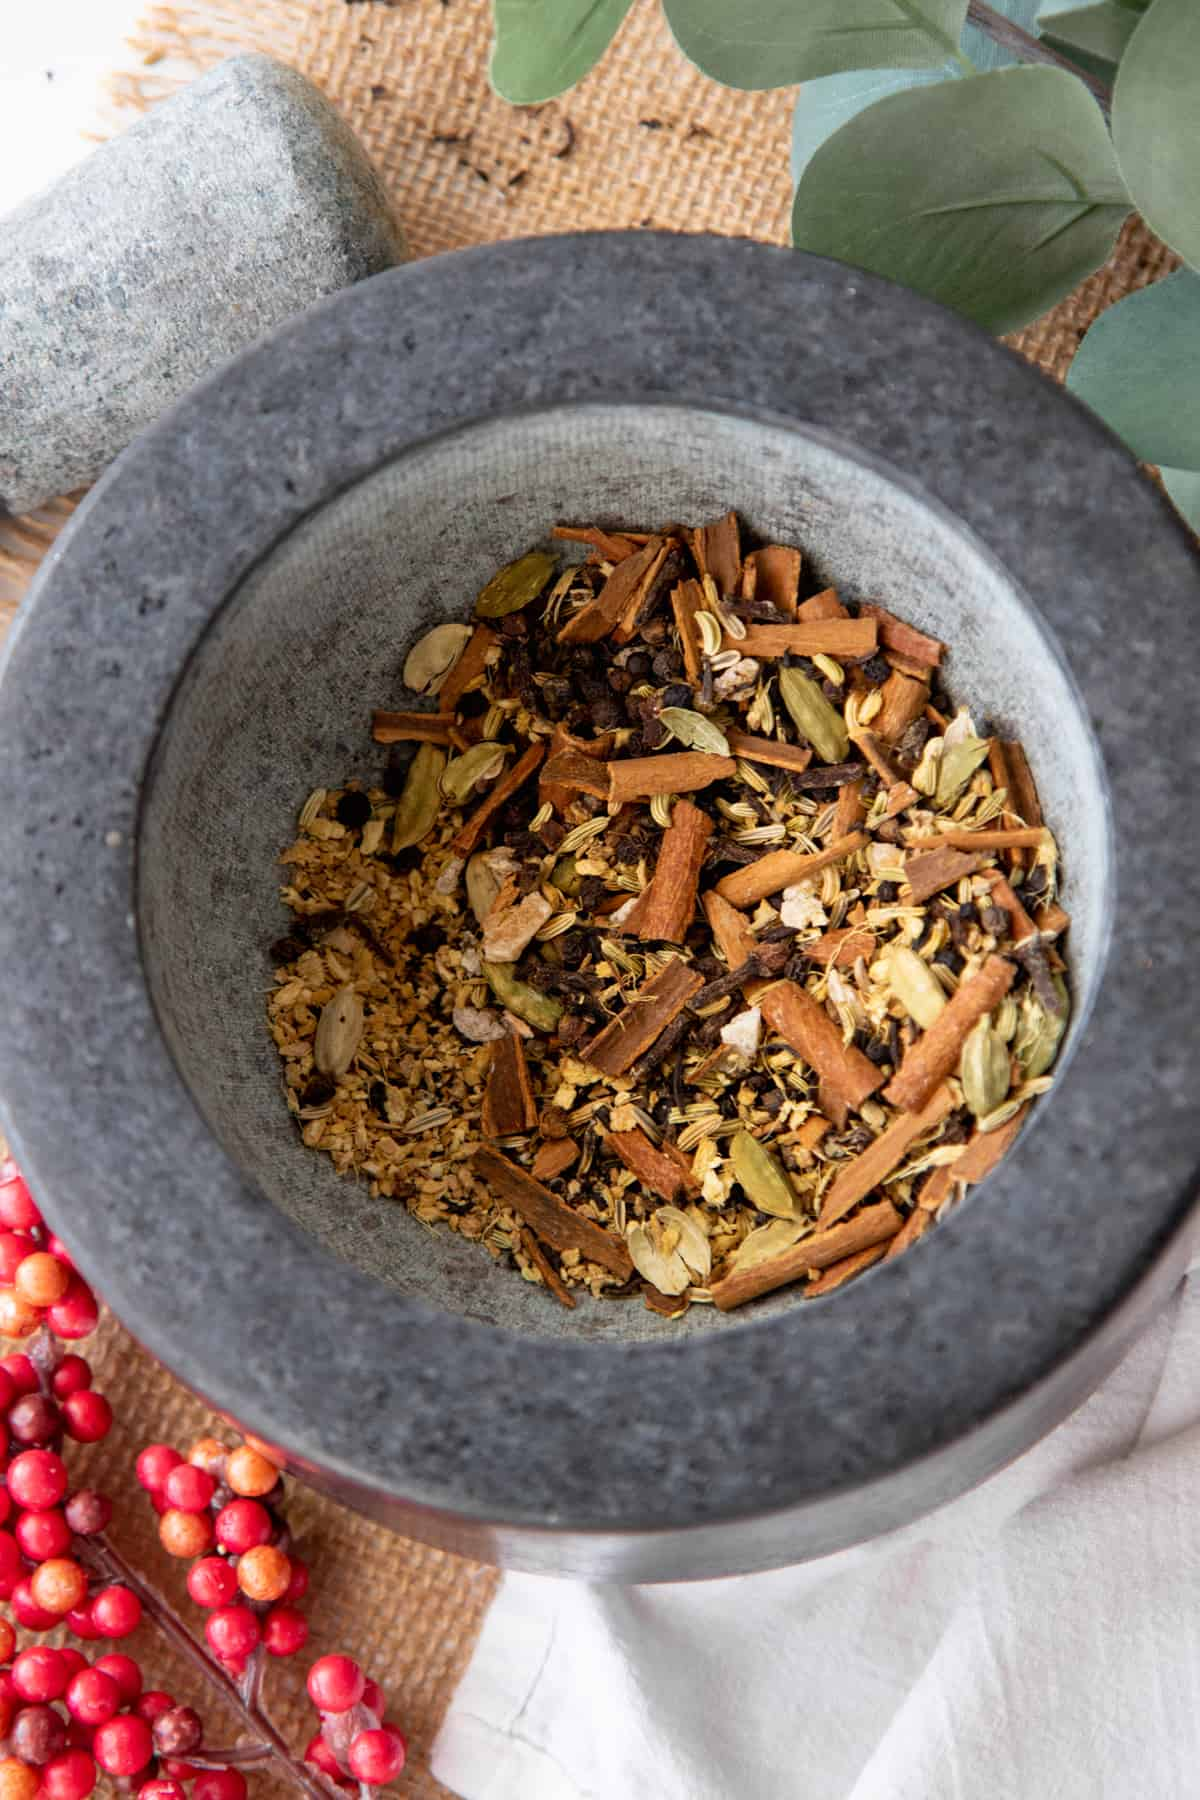 Crushed spices fill a gray mortar, after being crushed with a pestle.